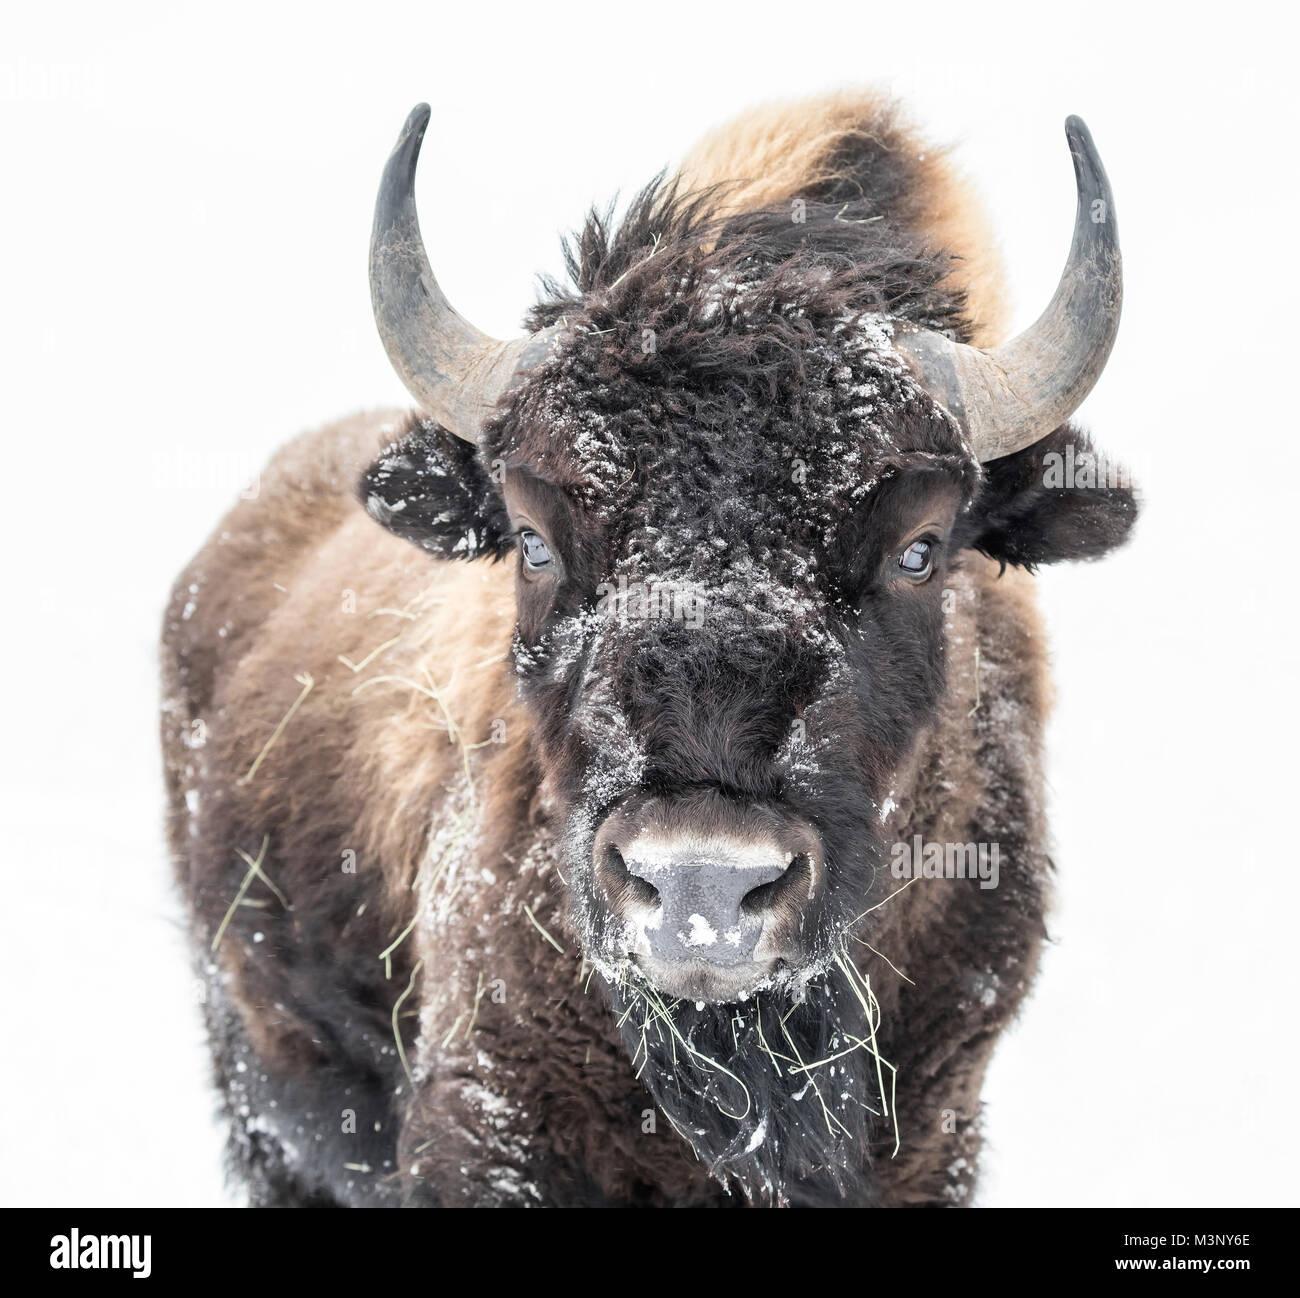 Plains Bison, (Bison bison bison) or American Buffalo, in winter, Riding Mountain National Park, Manitoba, Canada. - Stock Image